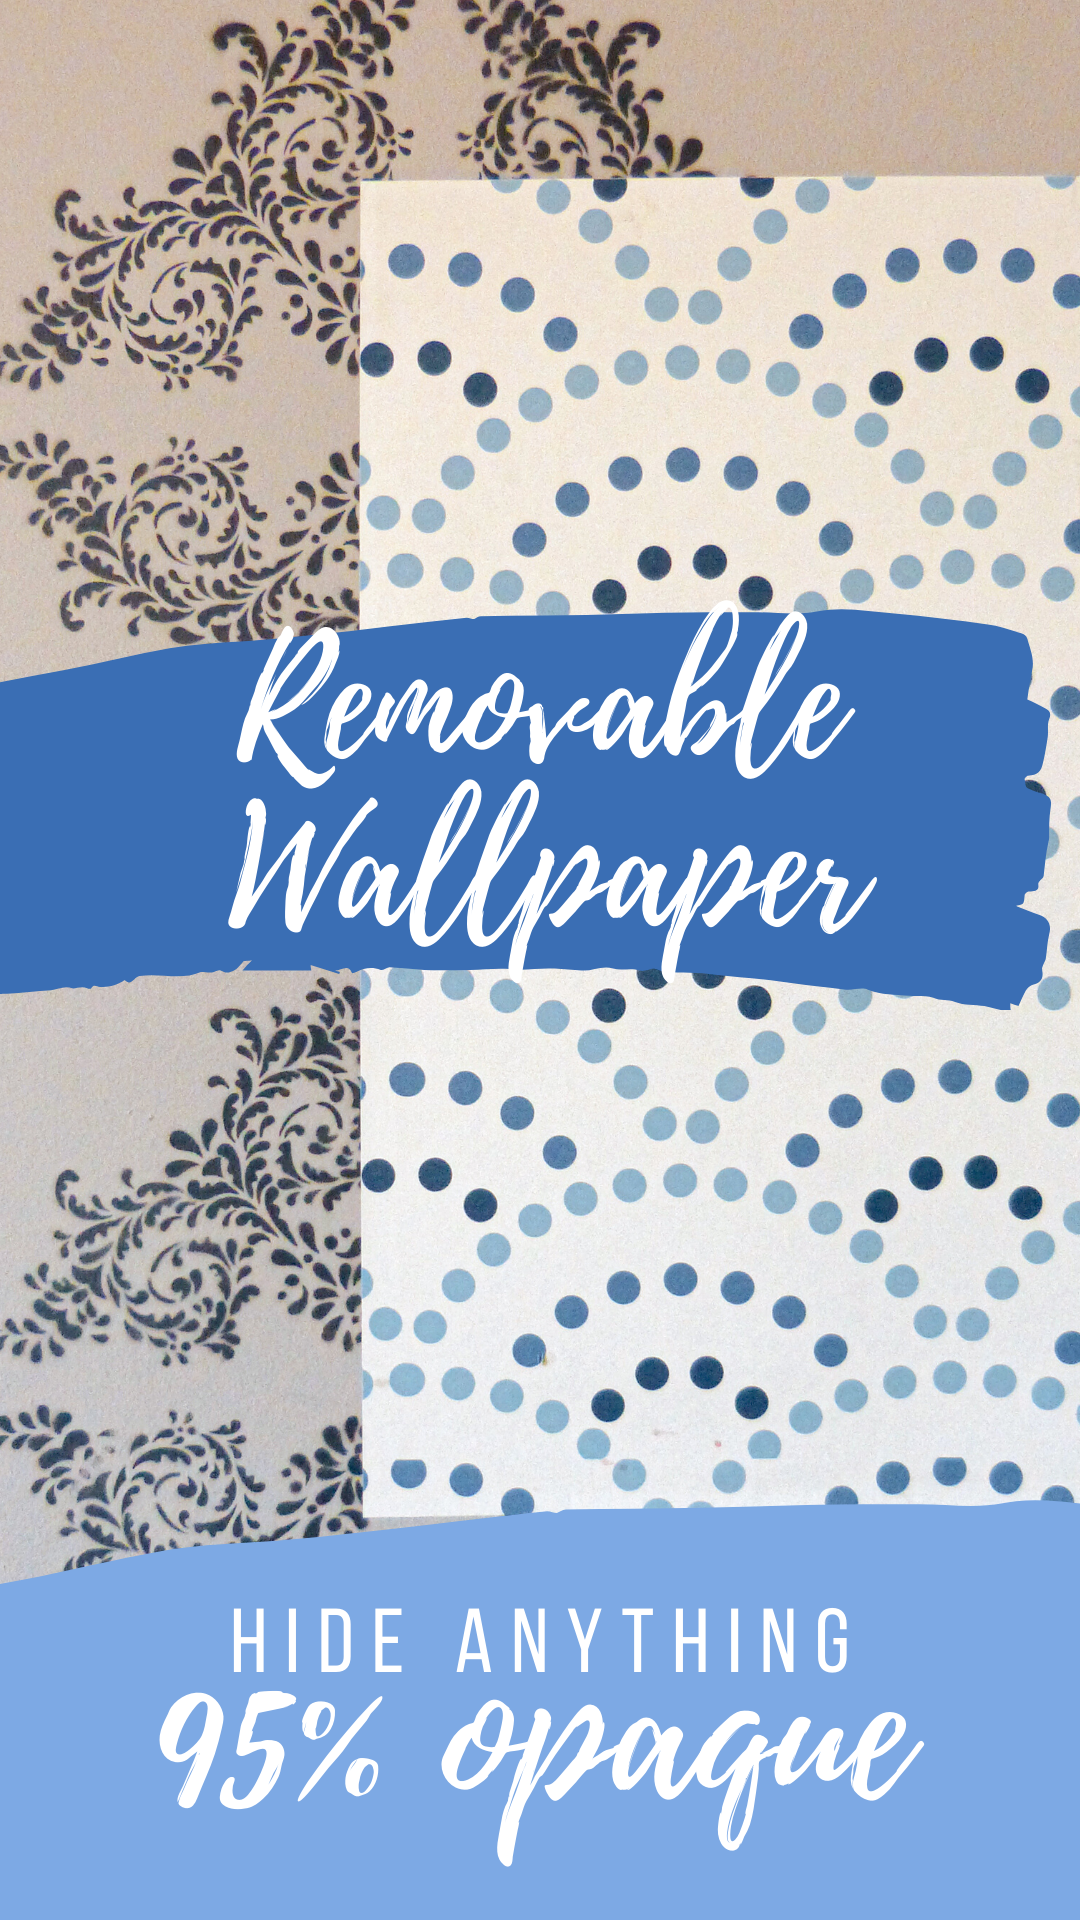 Peel And Stick Wallpaper Does It Really Work Peel And Stick Wallpaper Removable Wallpaper Wallpaper